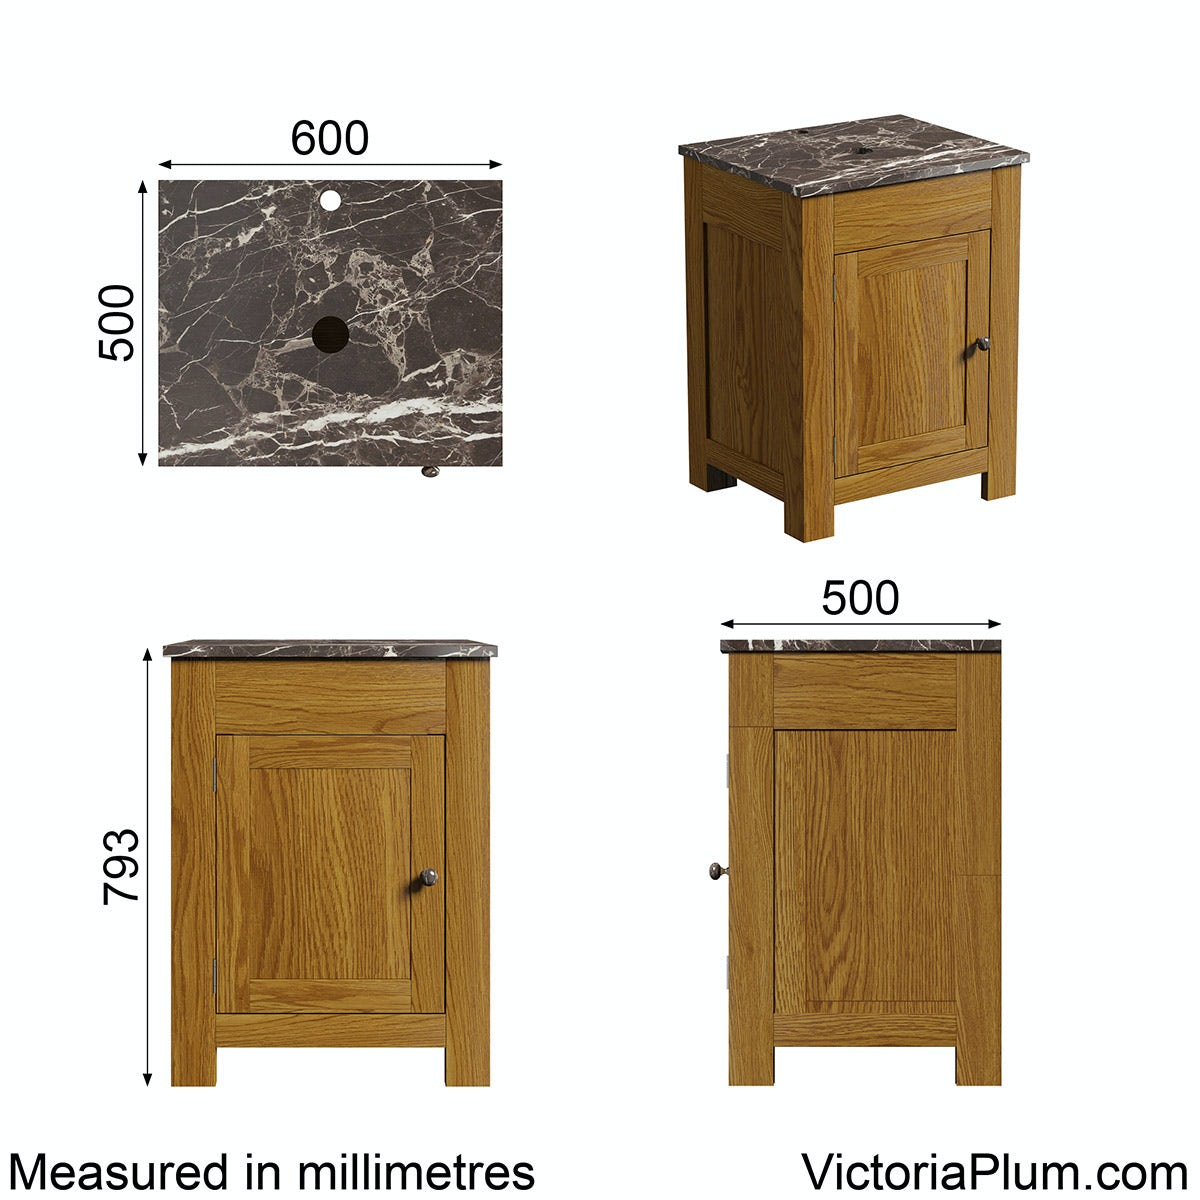 Dimensions for The Bath Co. Chester oak washstand with brown marble top 600mm